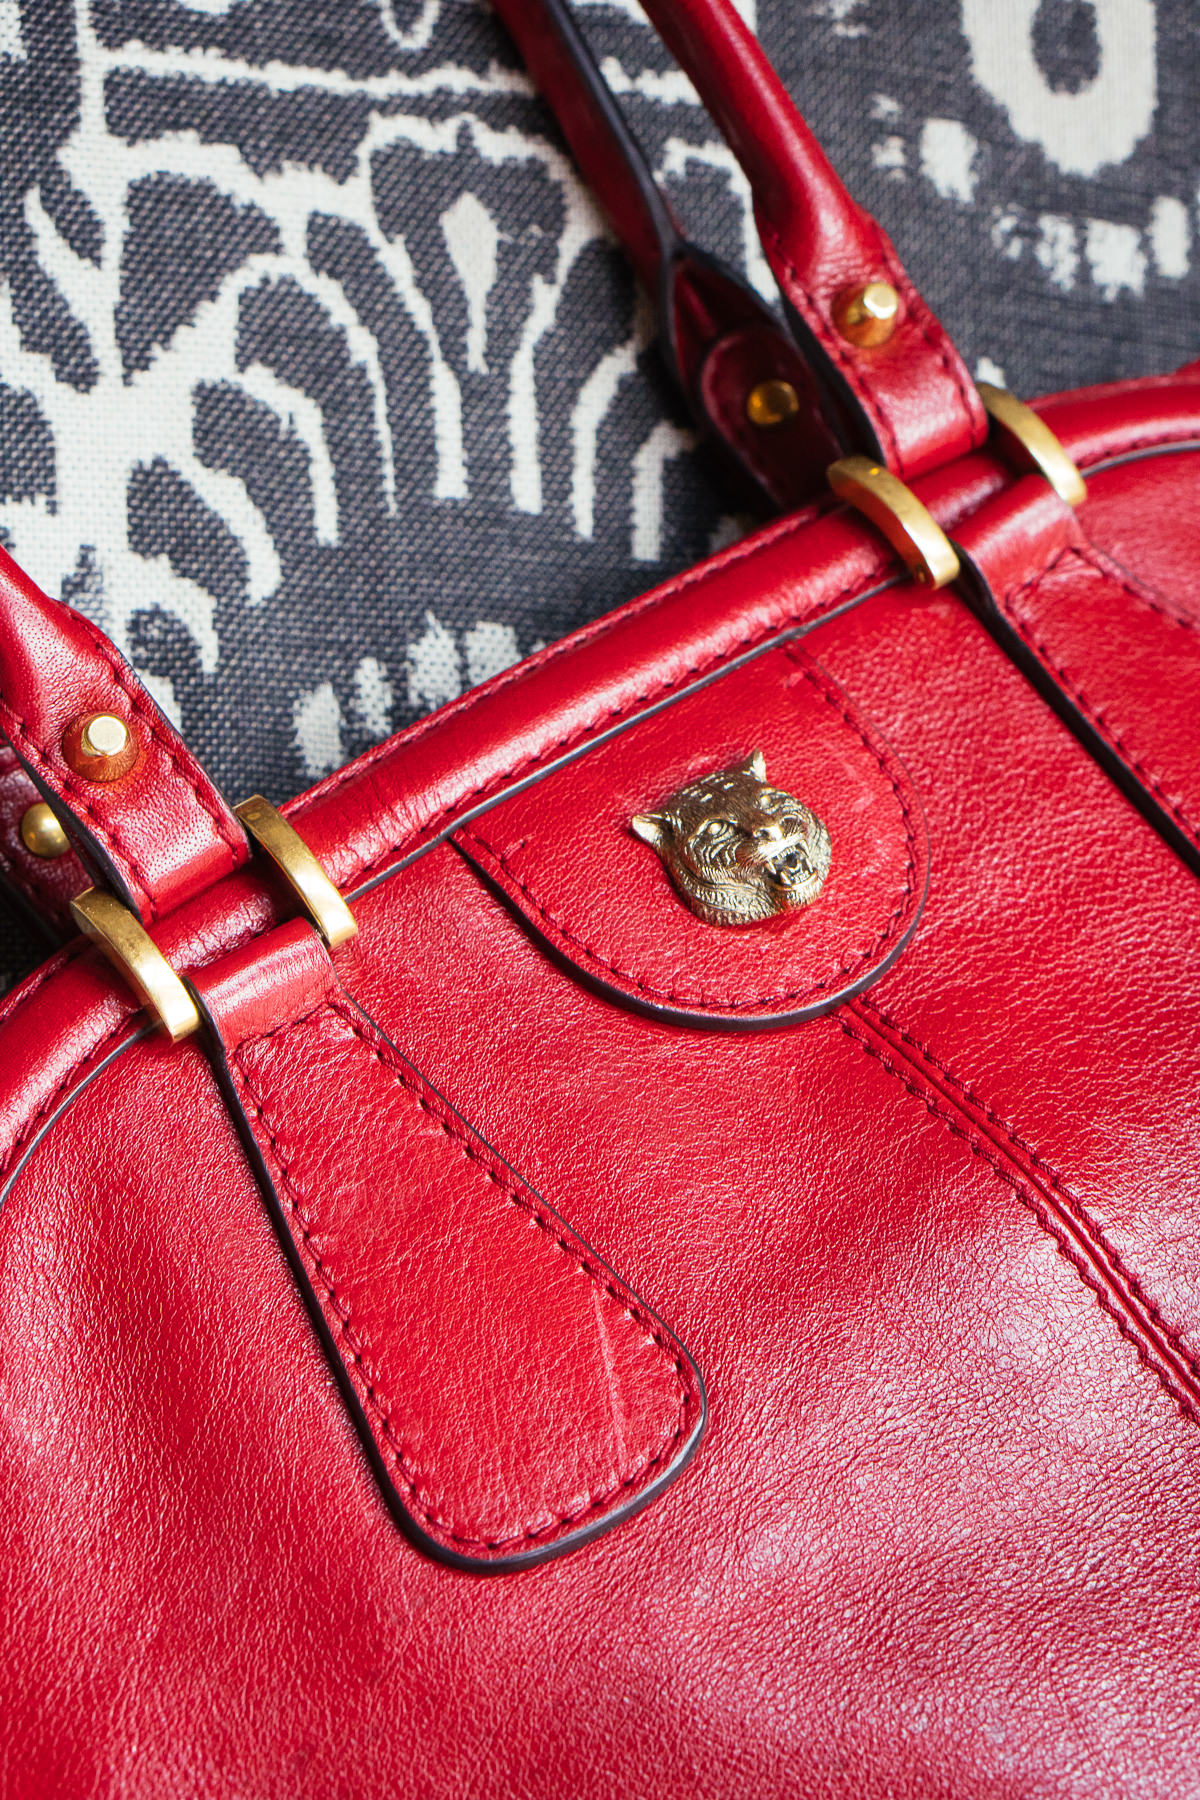 The Gucci REBELLE Bag Is The Day Bag Of My Dreams